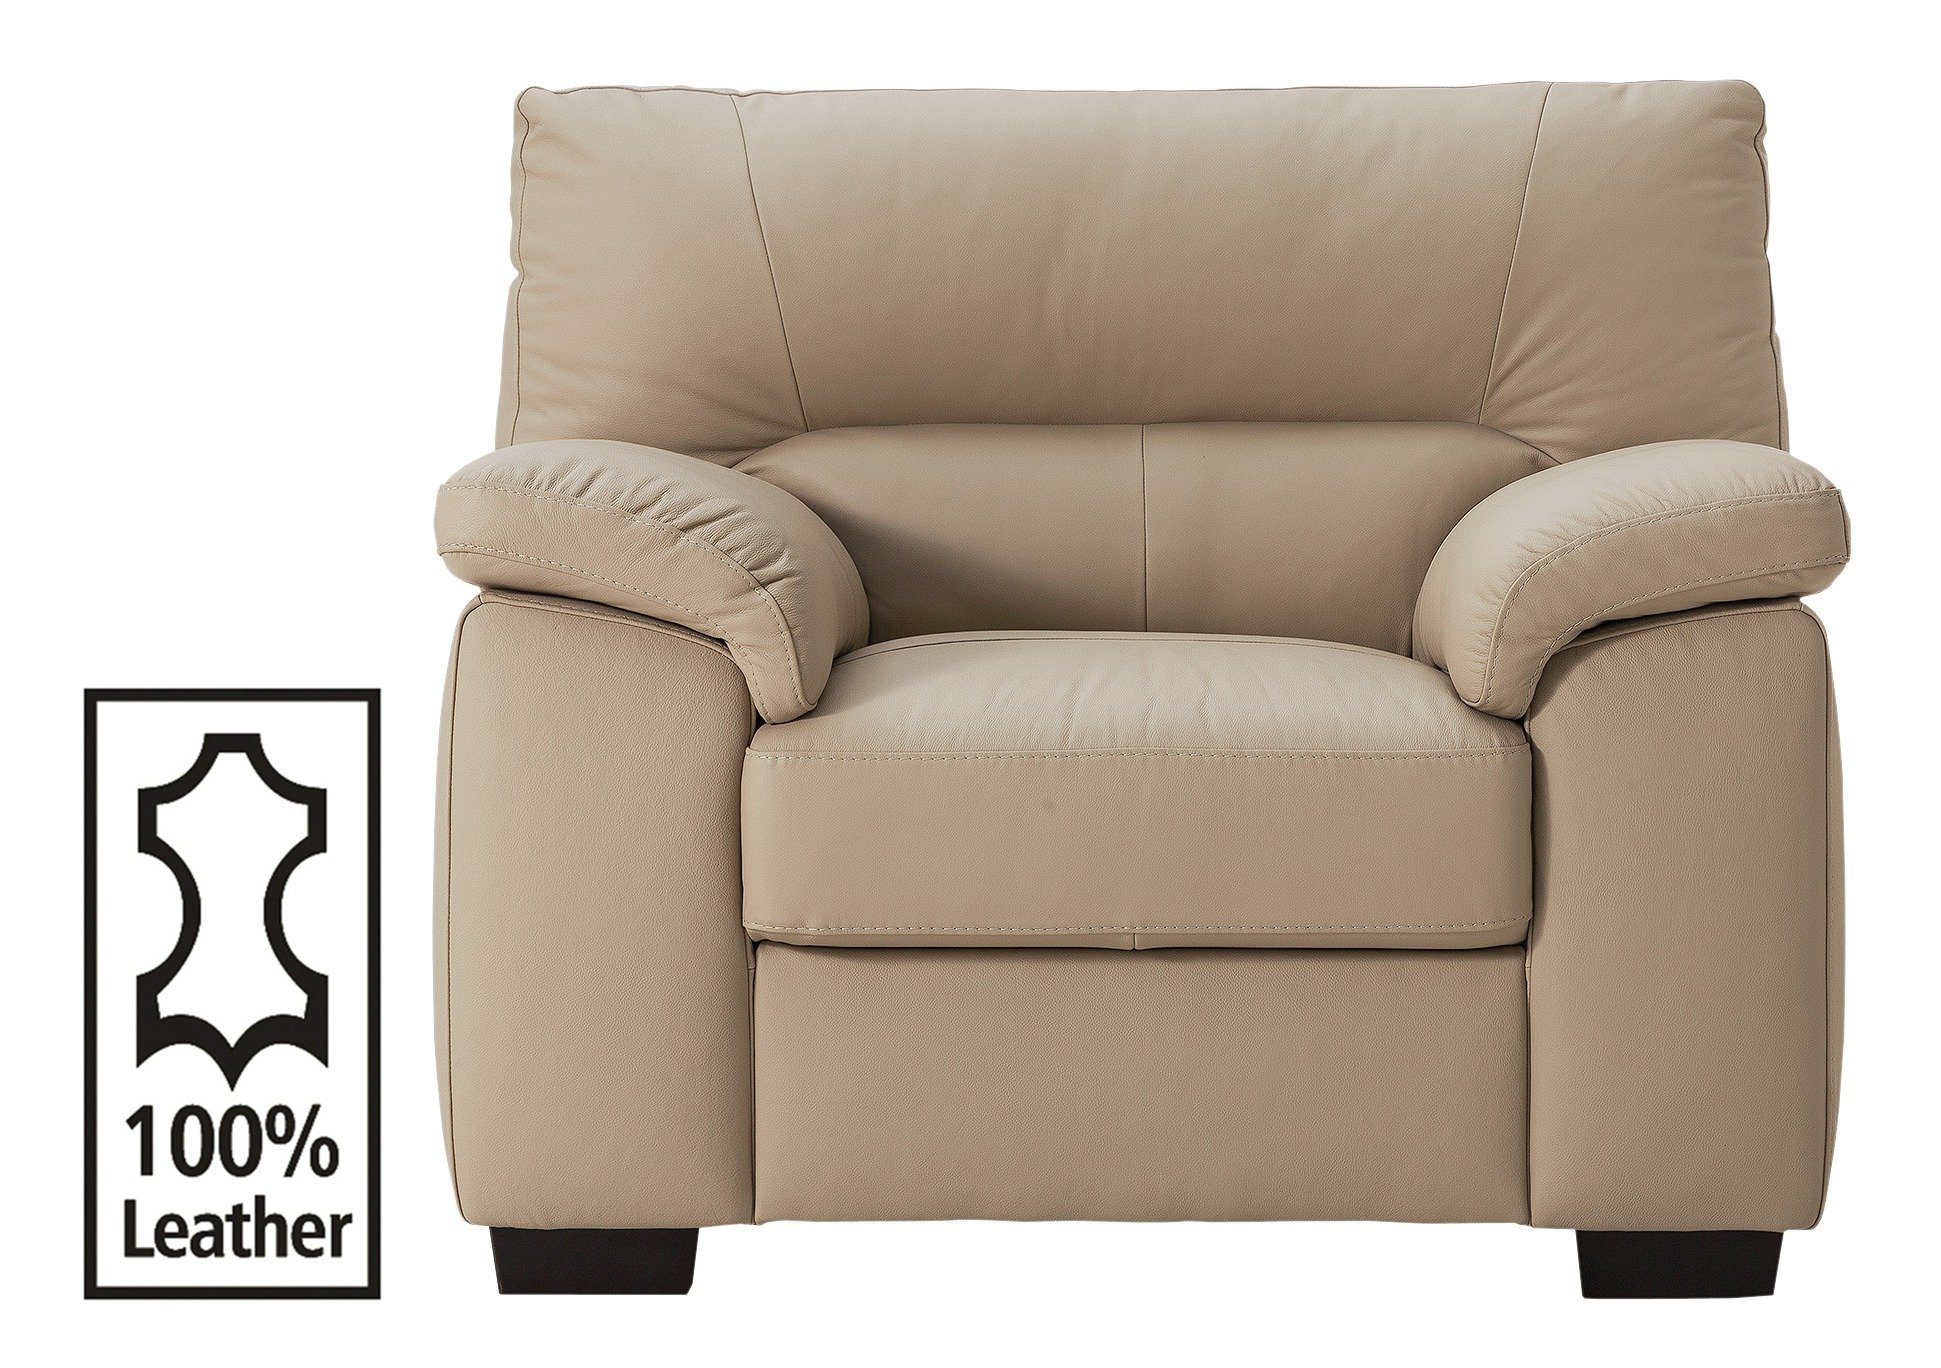 Argos Home Piacenza Leather Armchair - Taupe